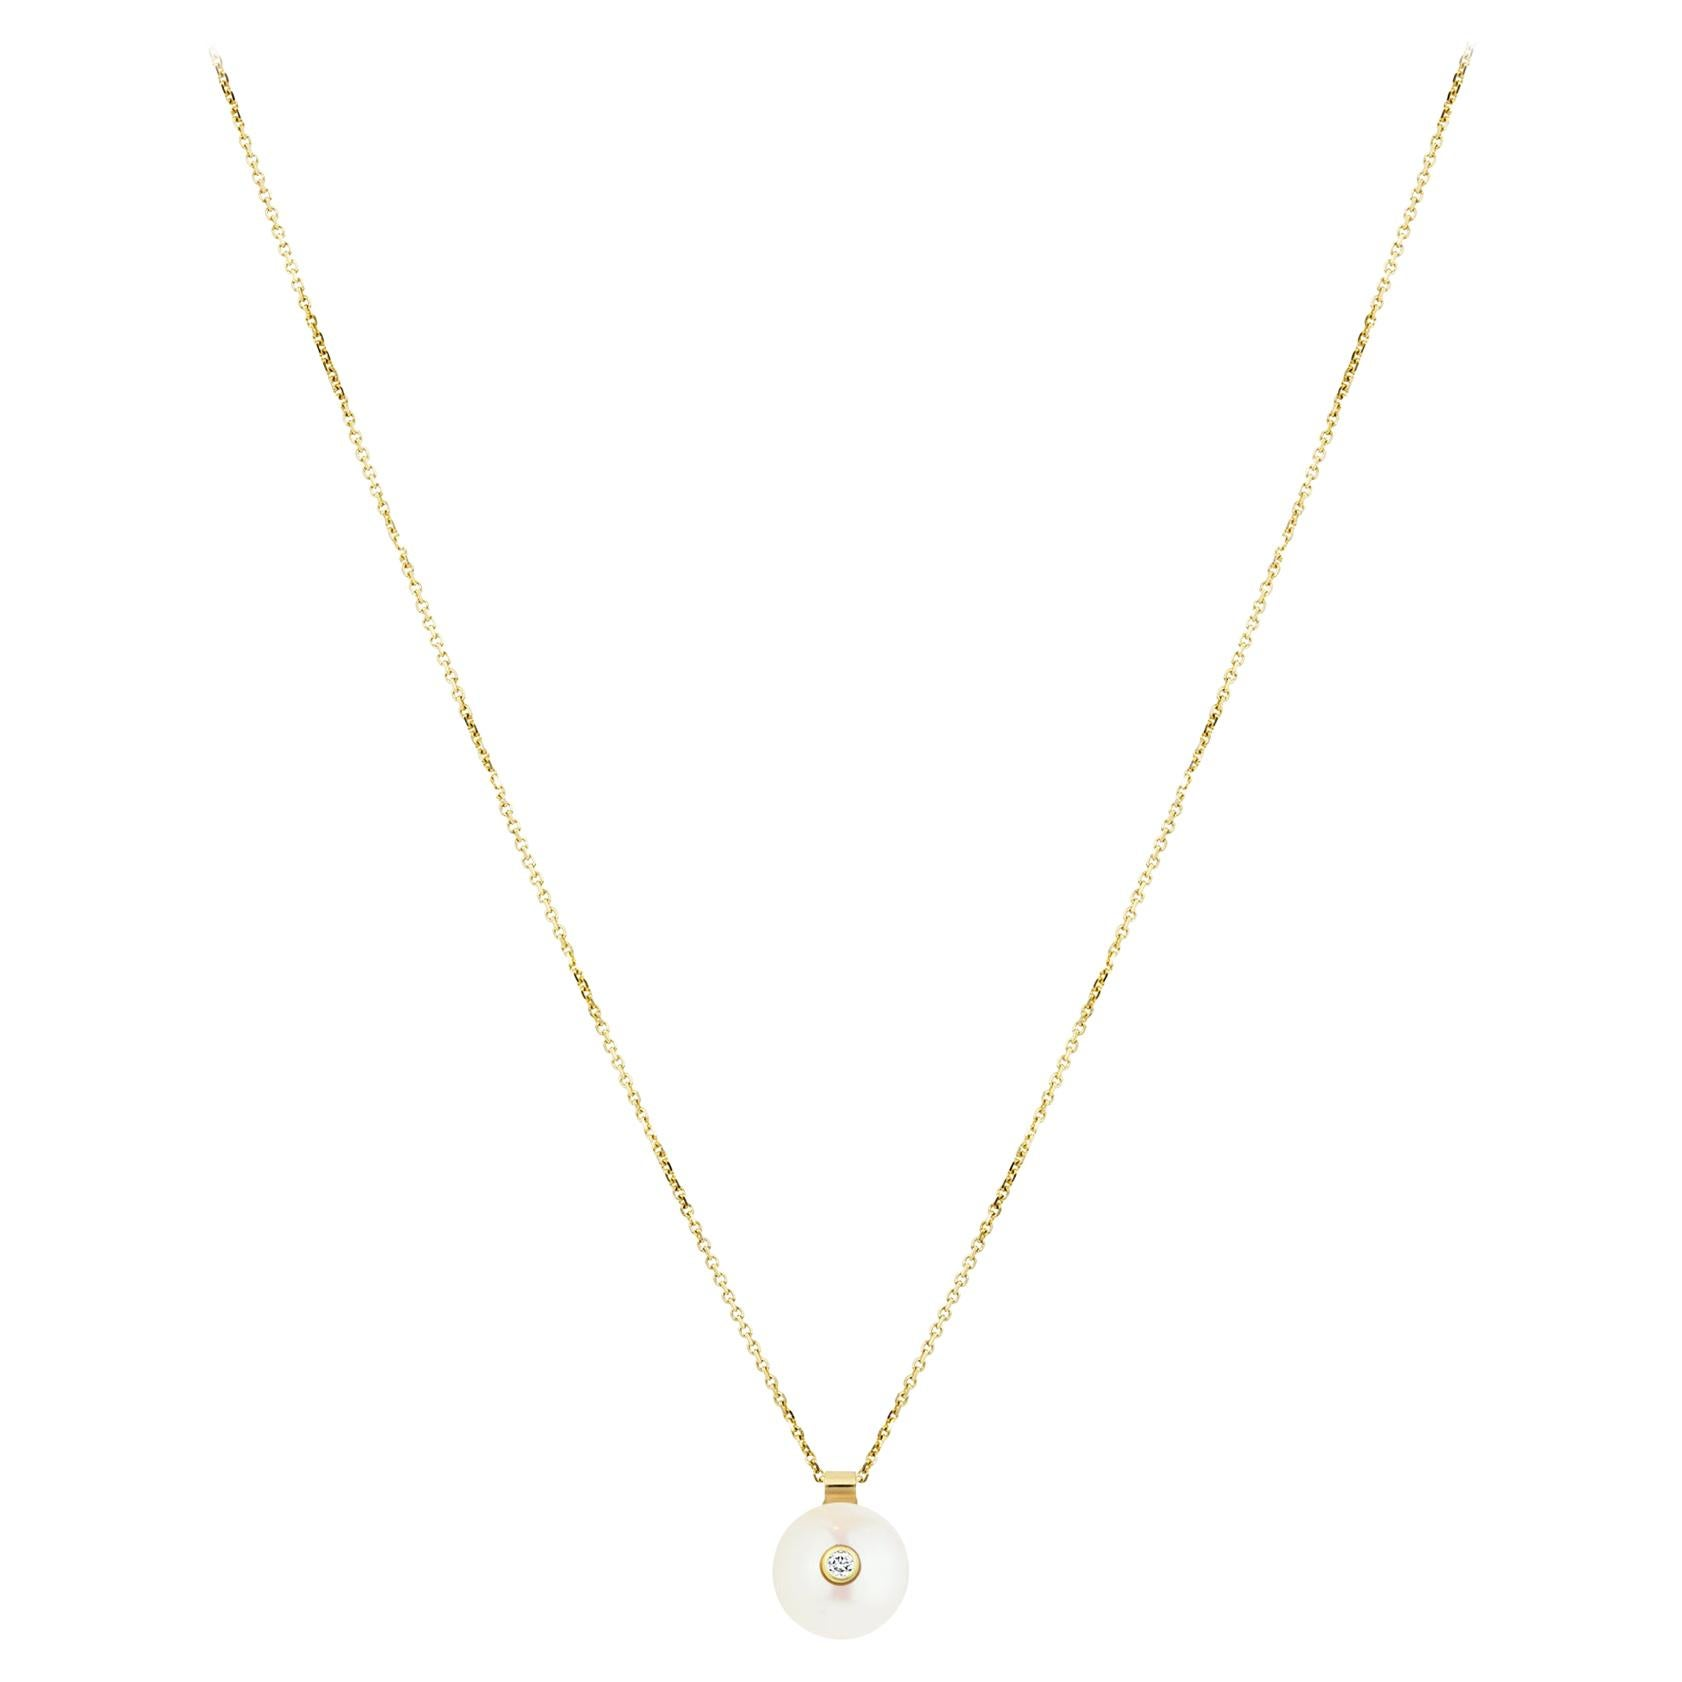 14 Karat Yellow Gold Diamond and White Pearl Necklace